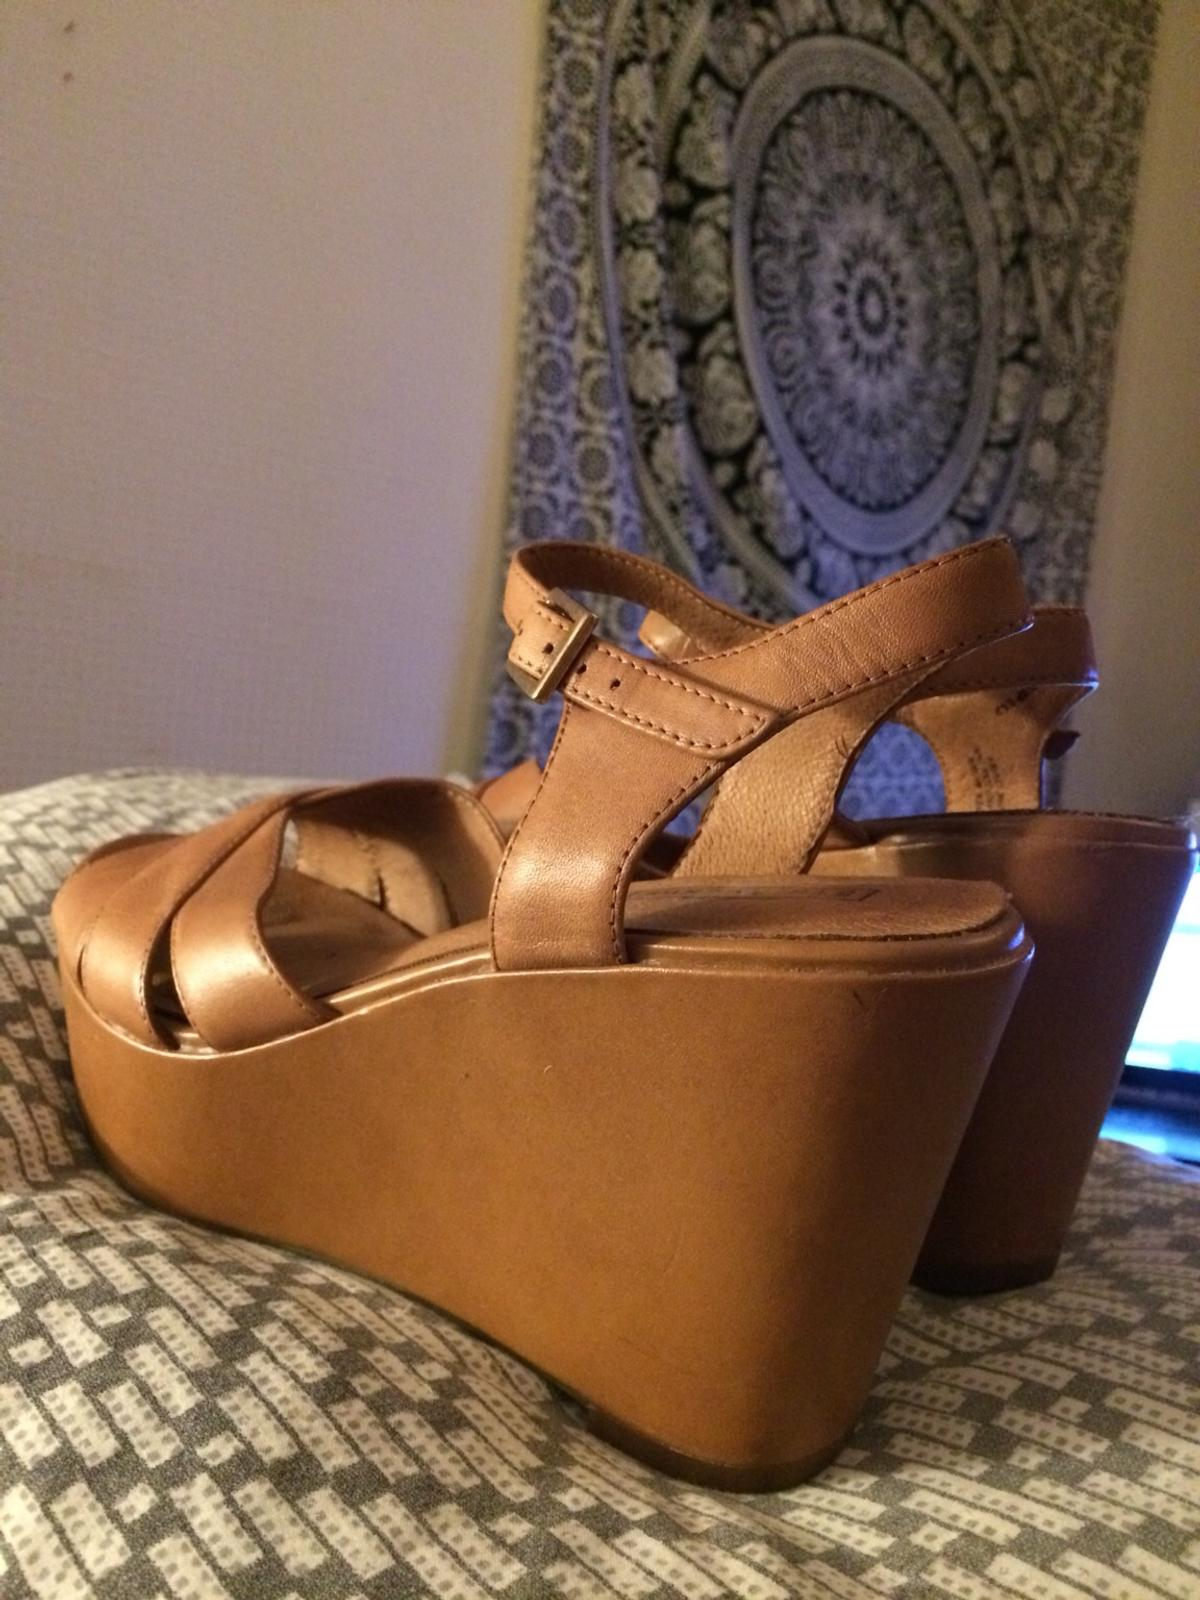 86f02133a45 5th Avenue Wedge Heel Tan Size 6 in E3 Hamlets for £10.00 for sale ...